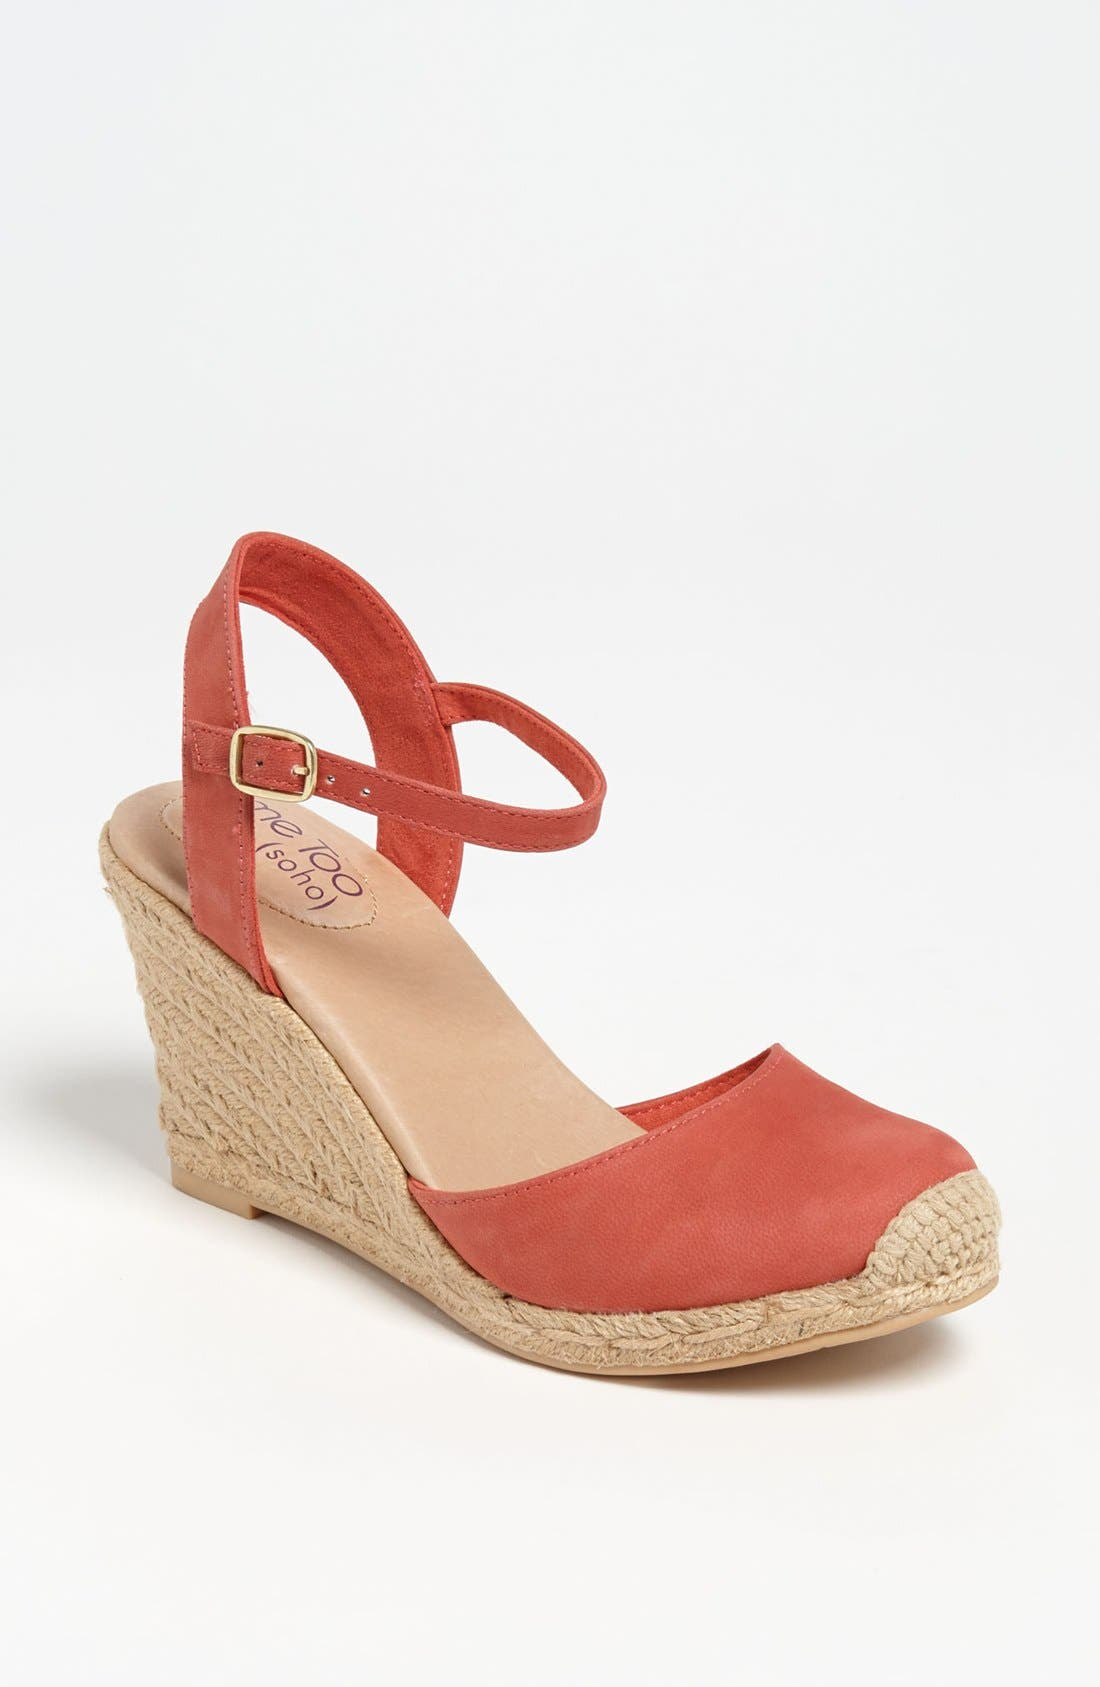 Alternate Image 1 Selected - Me Too 'Bethany' Wedge Sandal